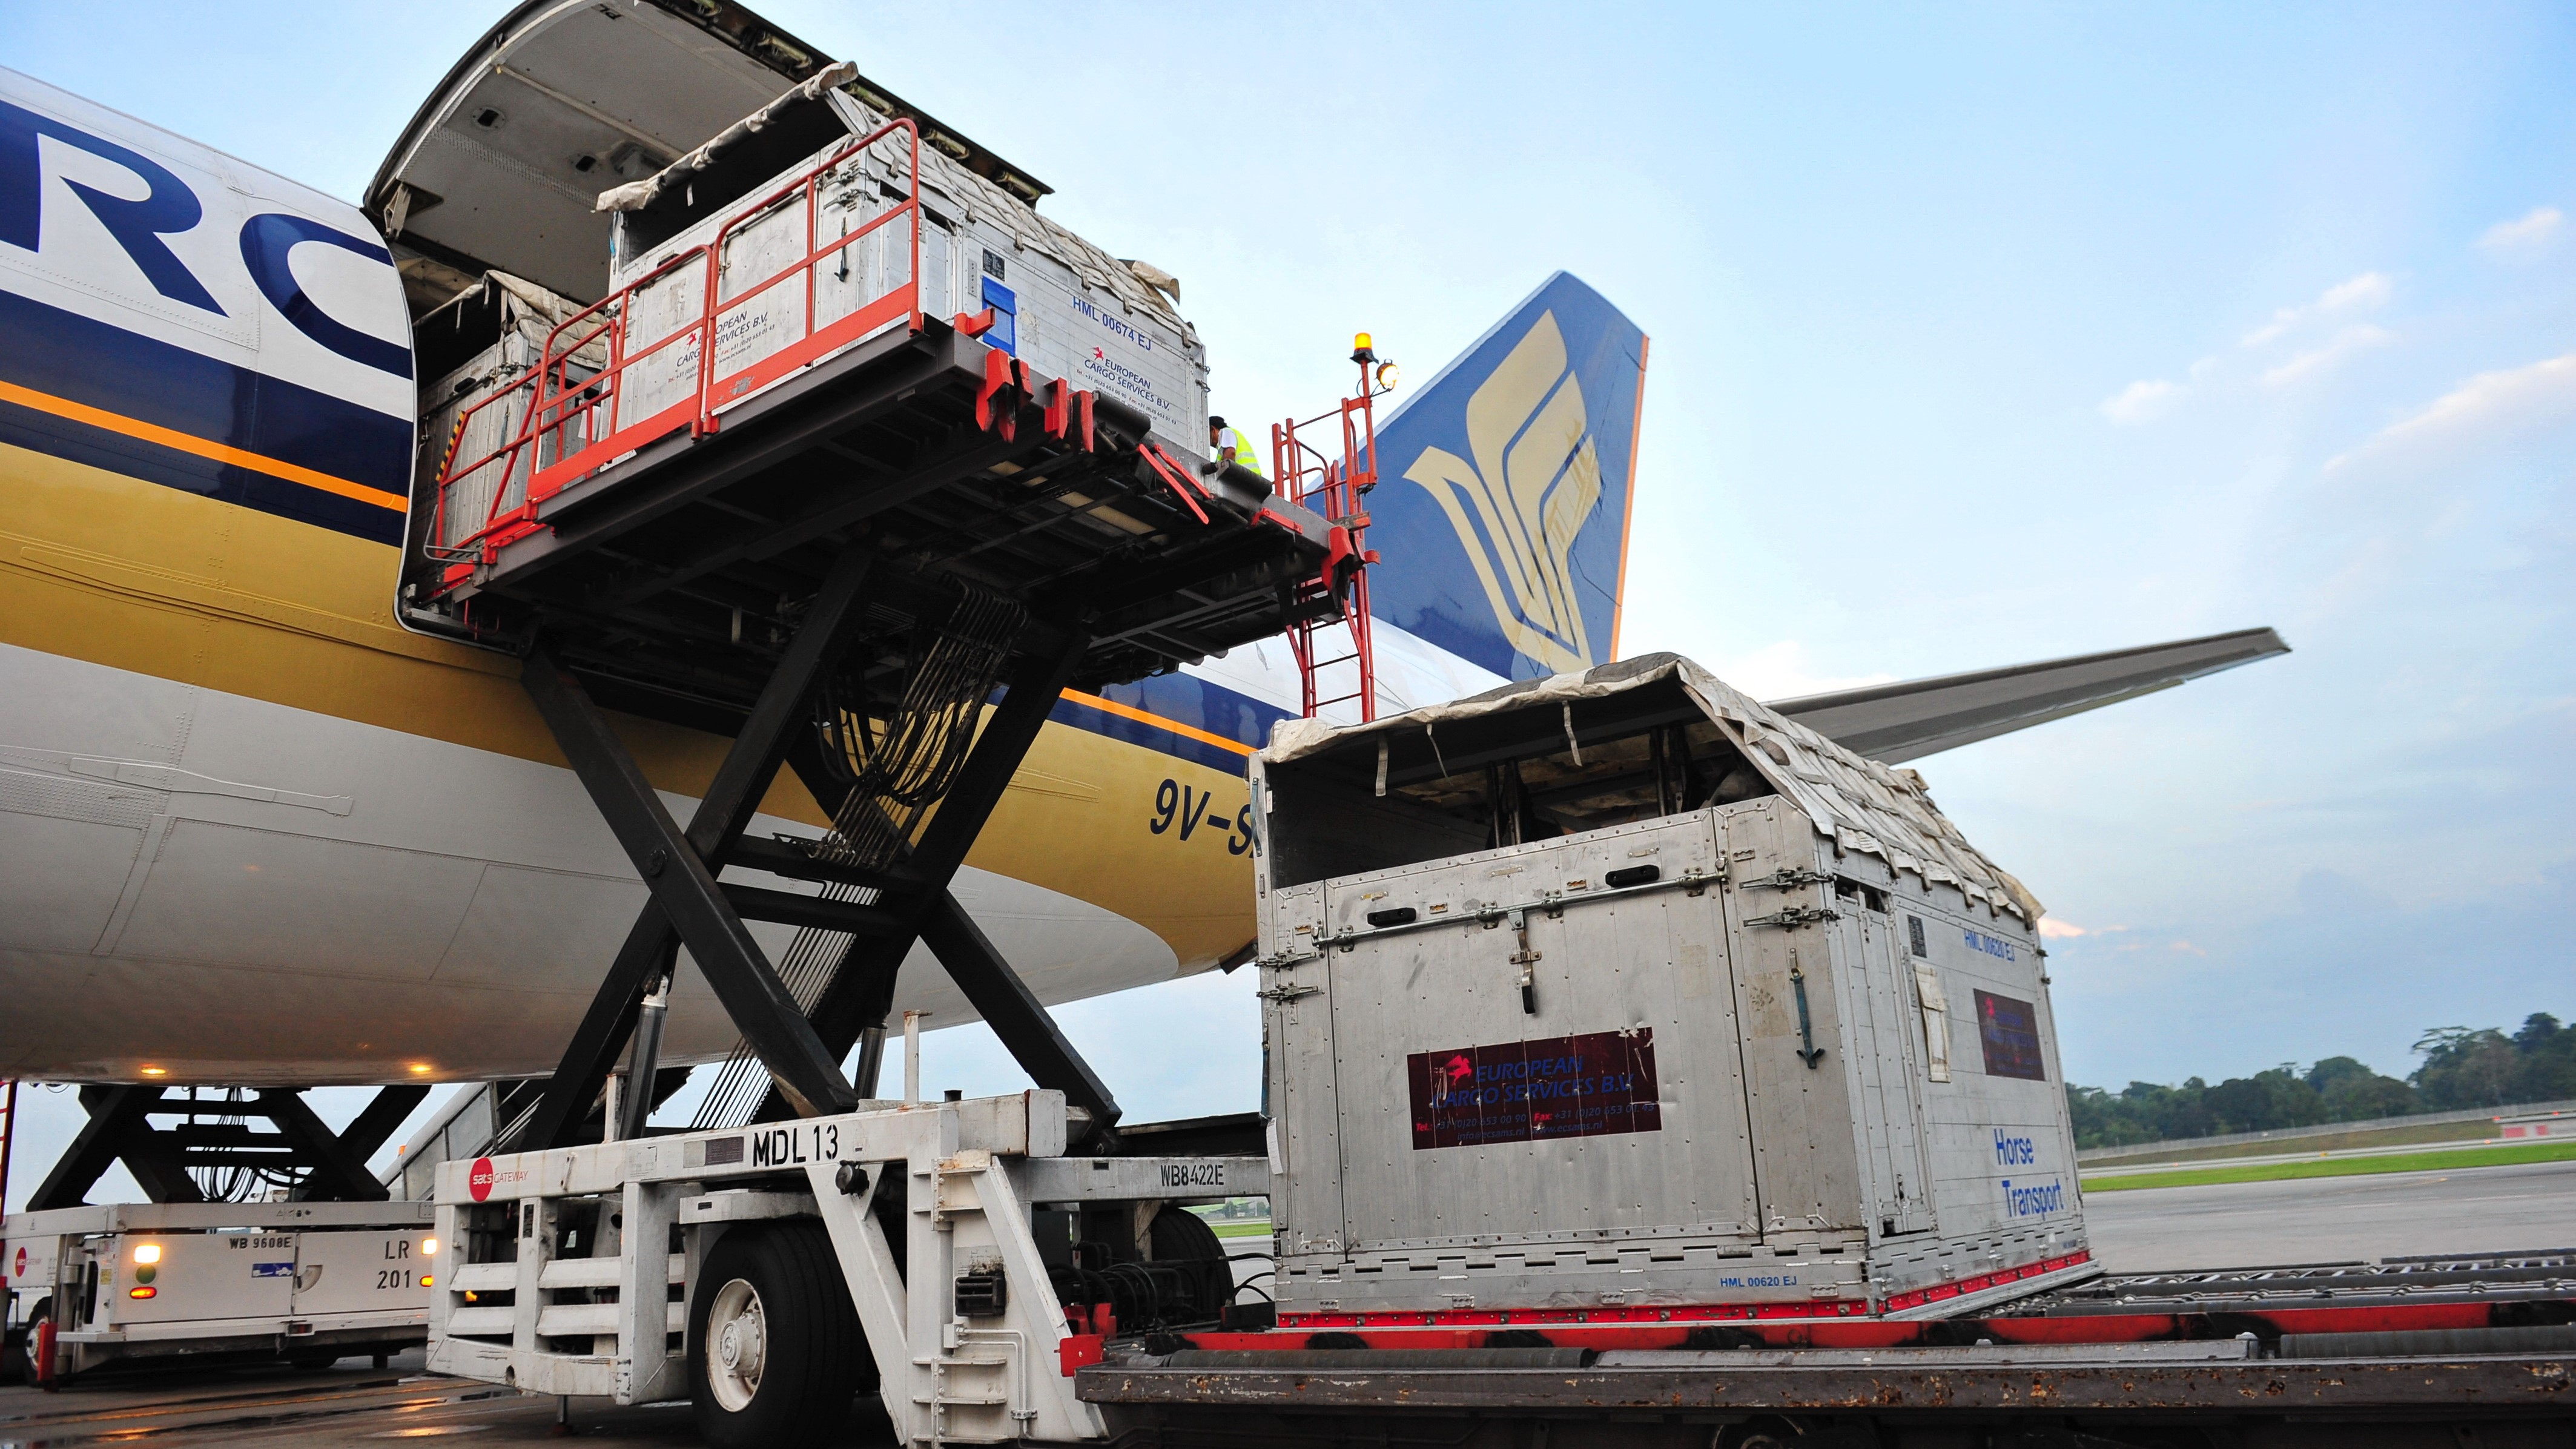 Singapore Changi Airport planning to double their cargo handling capacity 1